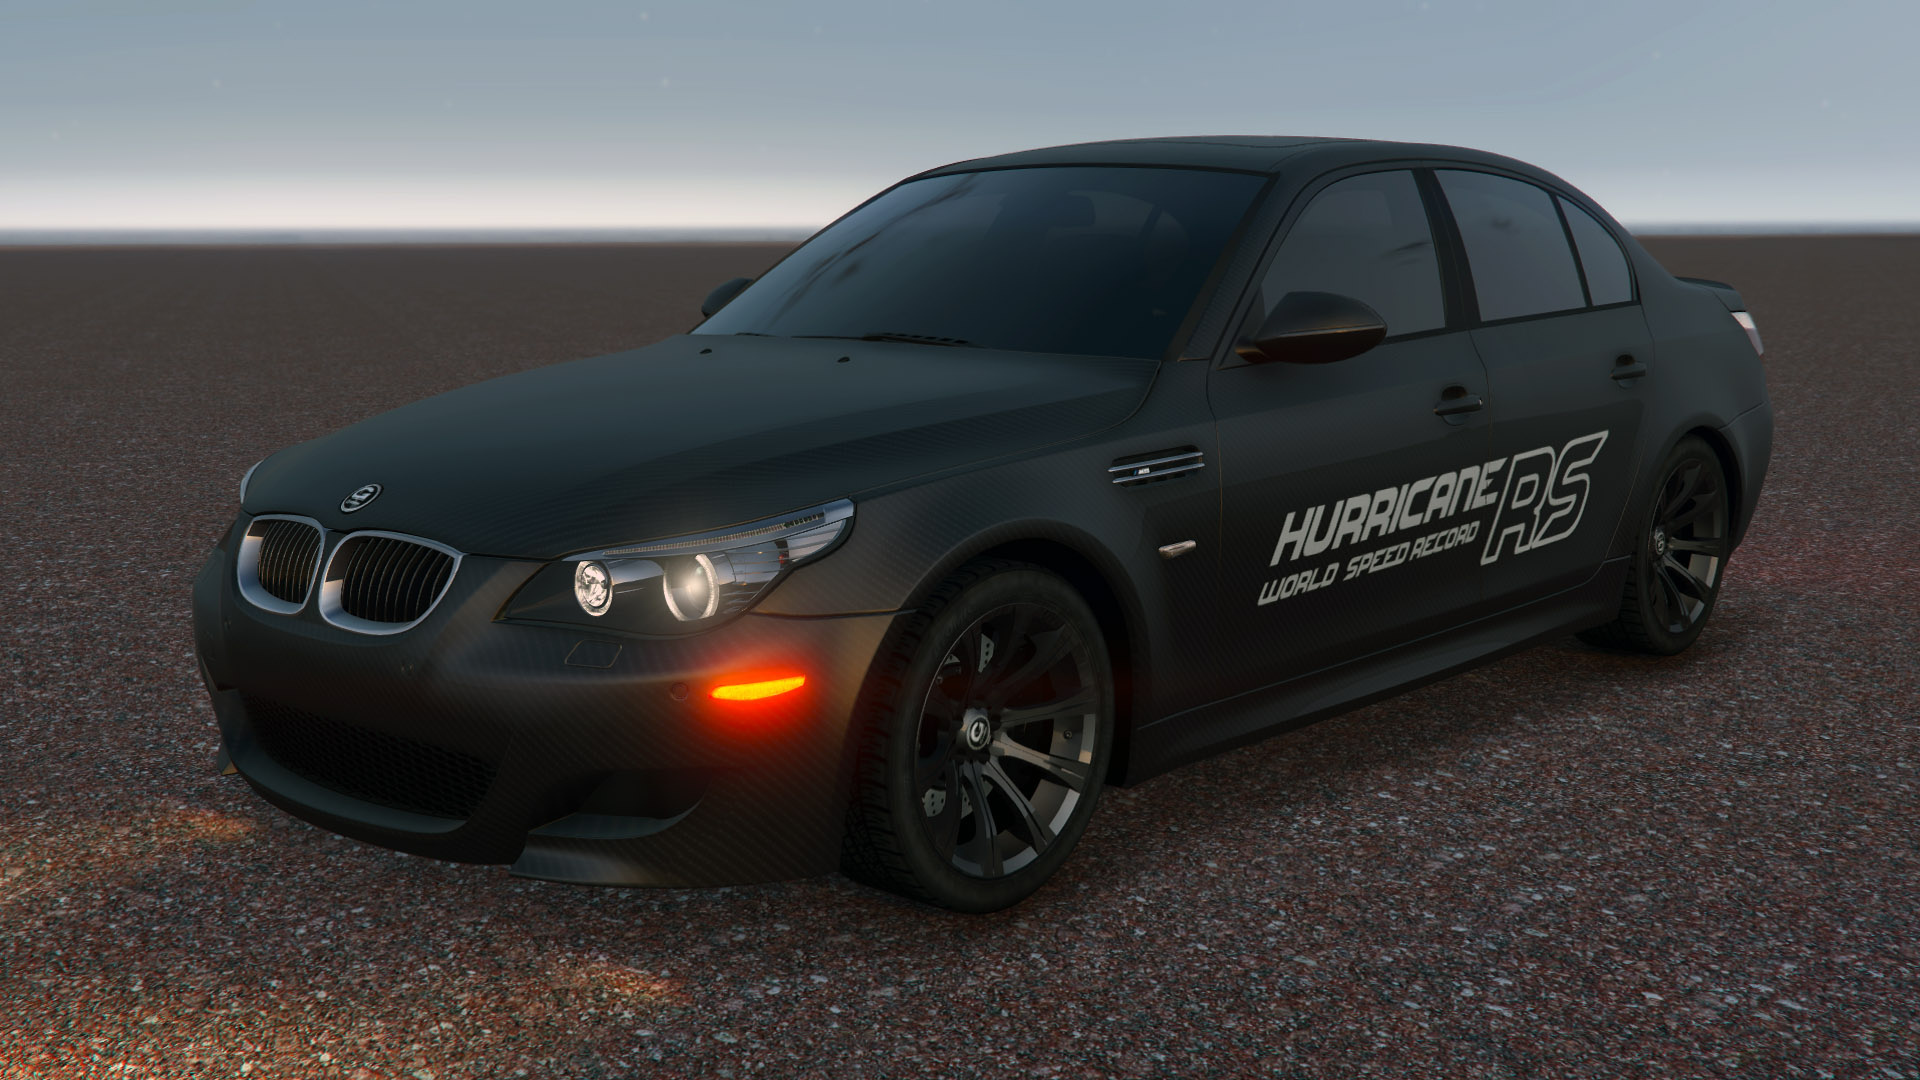 2009 Bmw M5 E60 G Power Hurricane Rs Livery Gta5 Mods Com